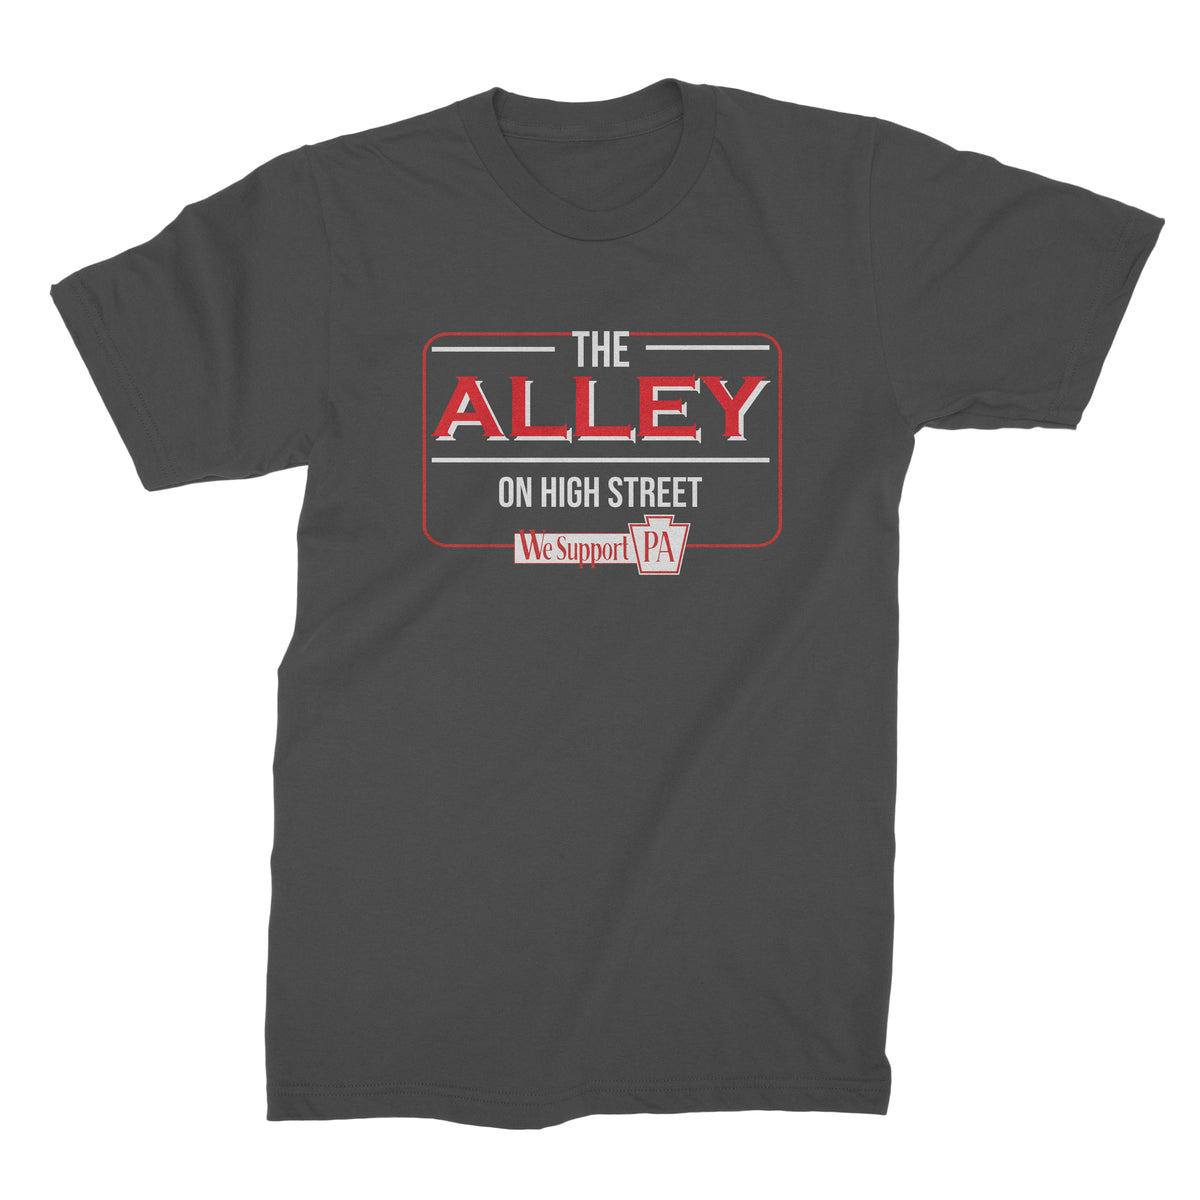 The Alley on High Street We Support PA T-Shirt